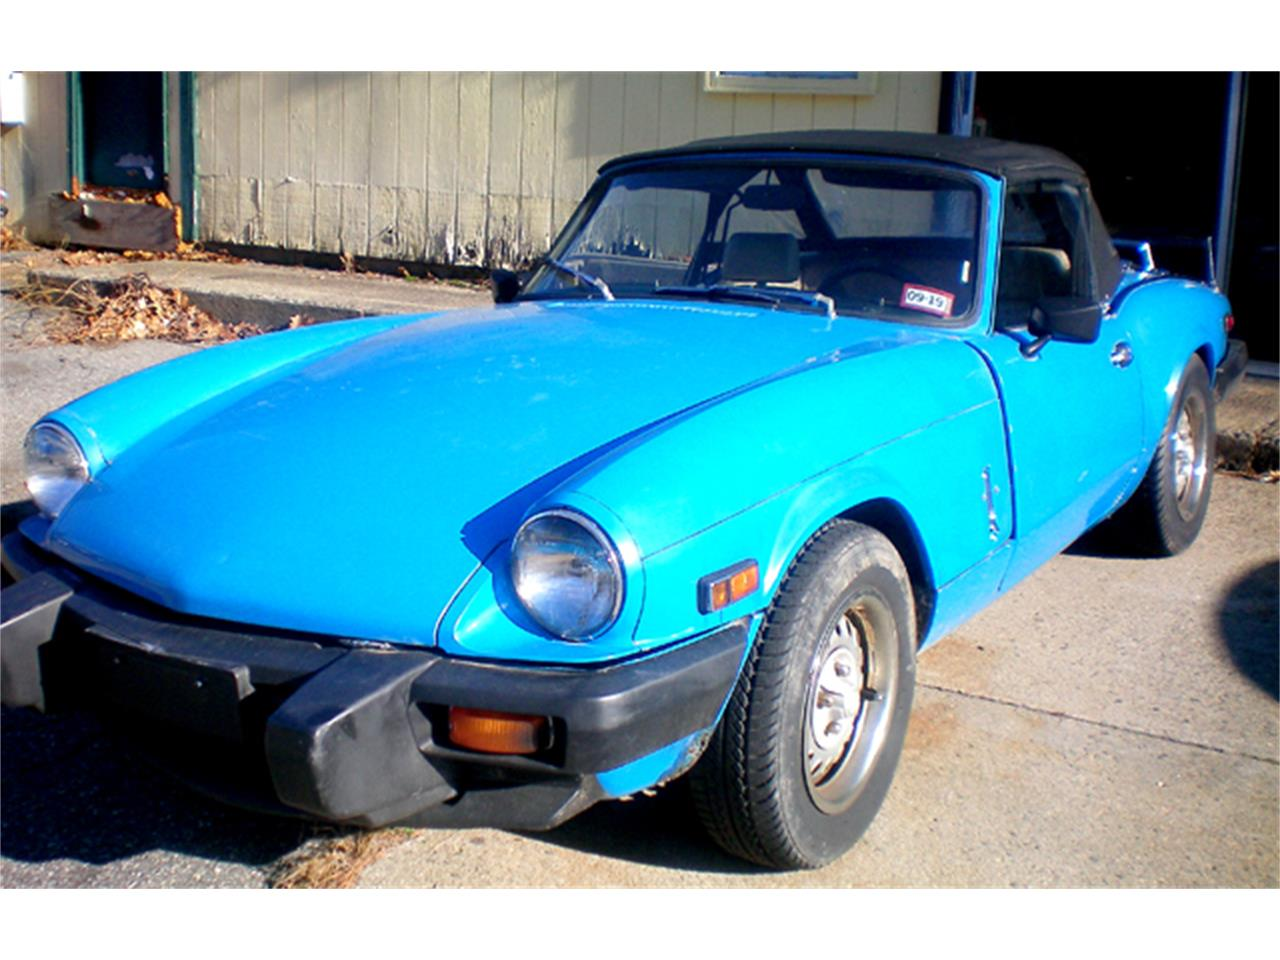 1979 Triumph Spitfire for sale in Rye, NH – photo 2